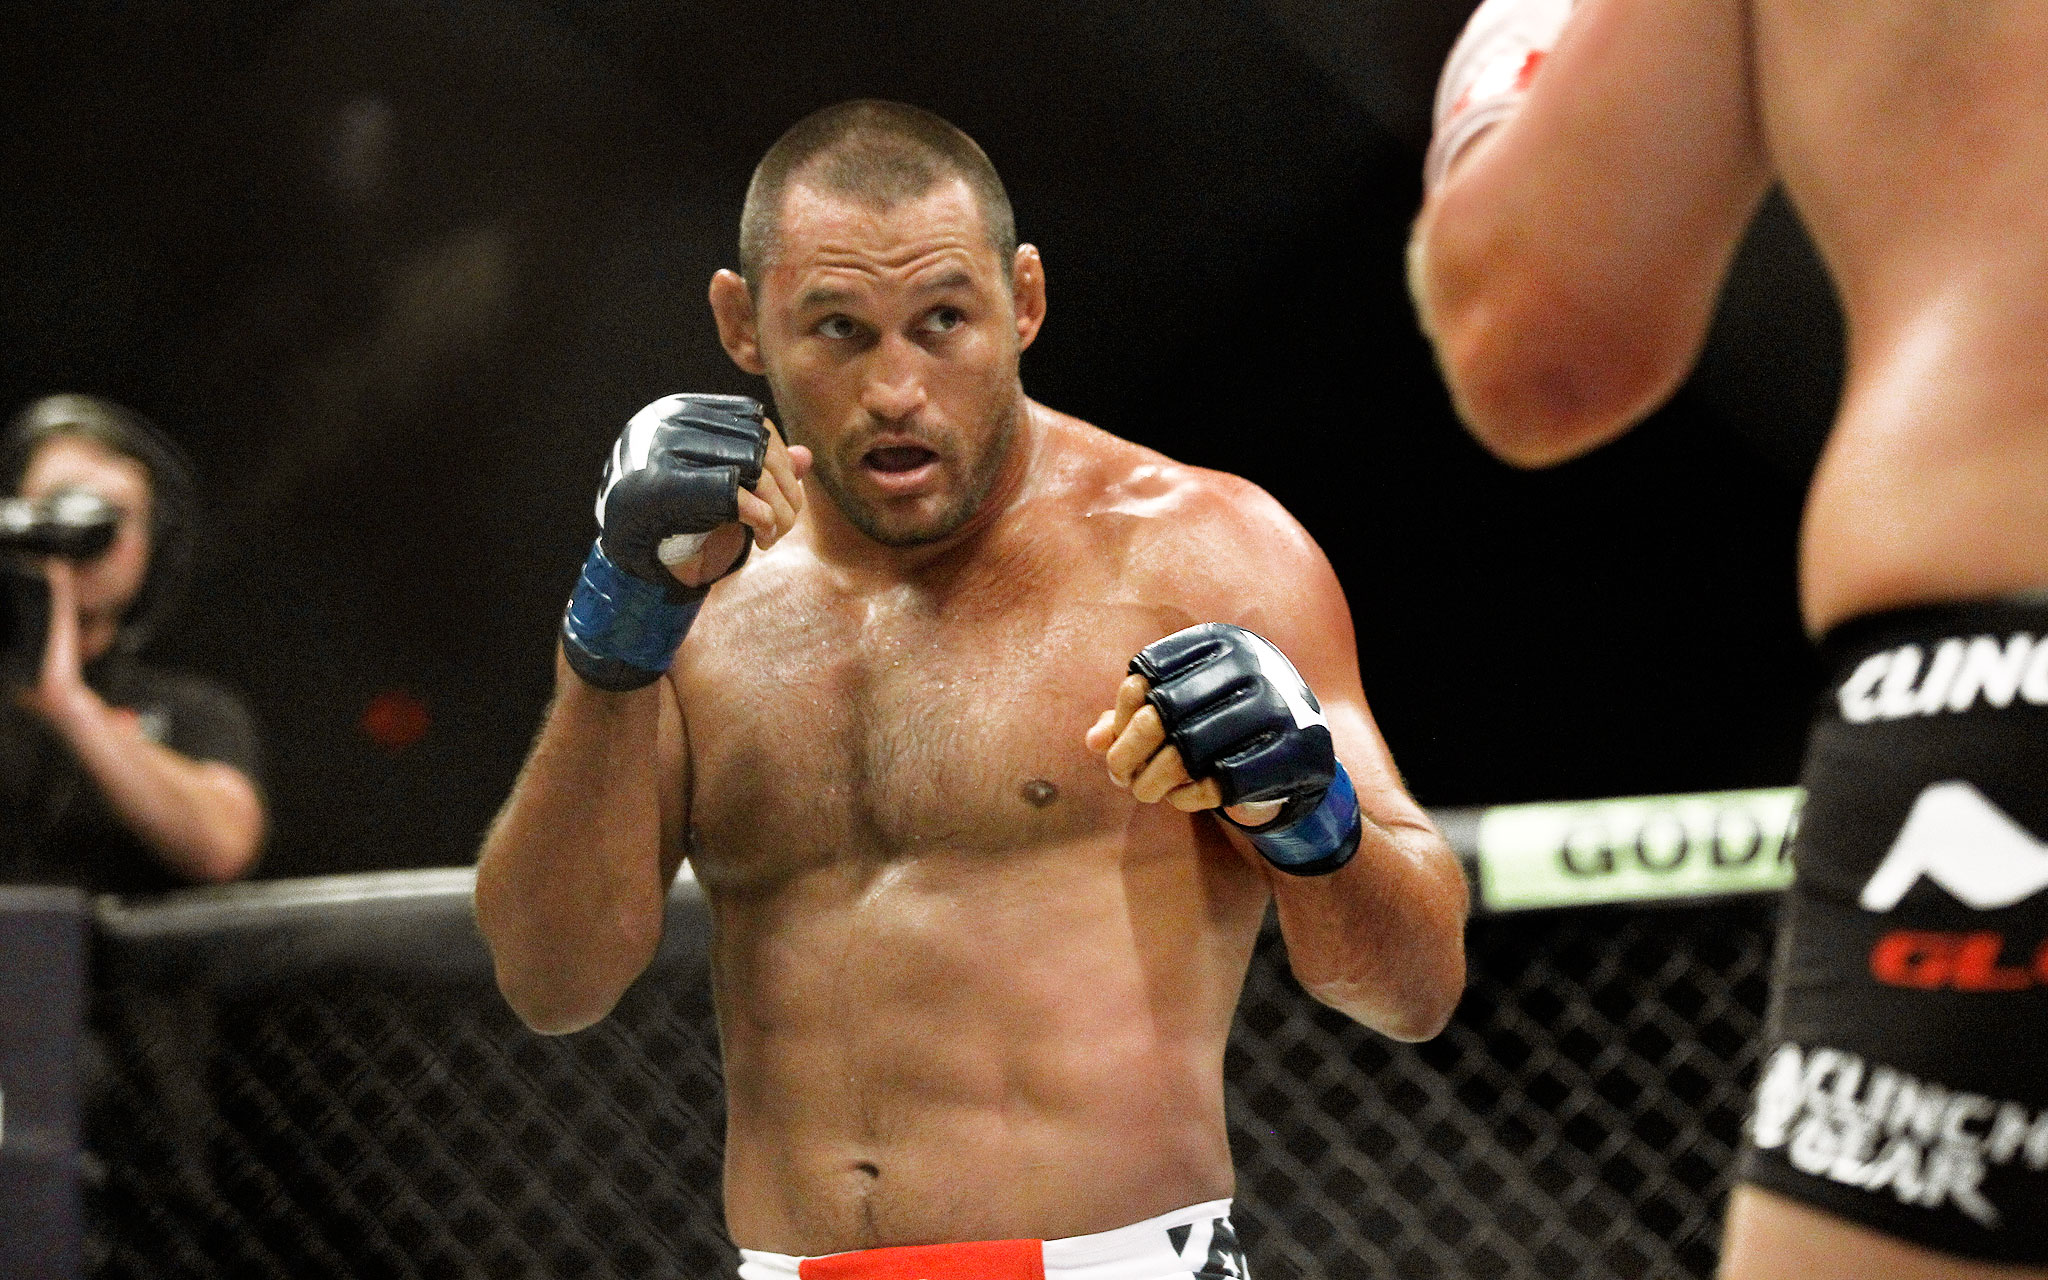 No. 5: Dan Henderson injures himself